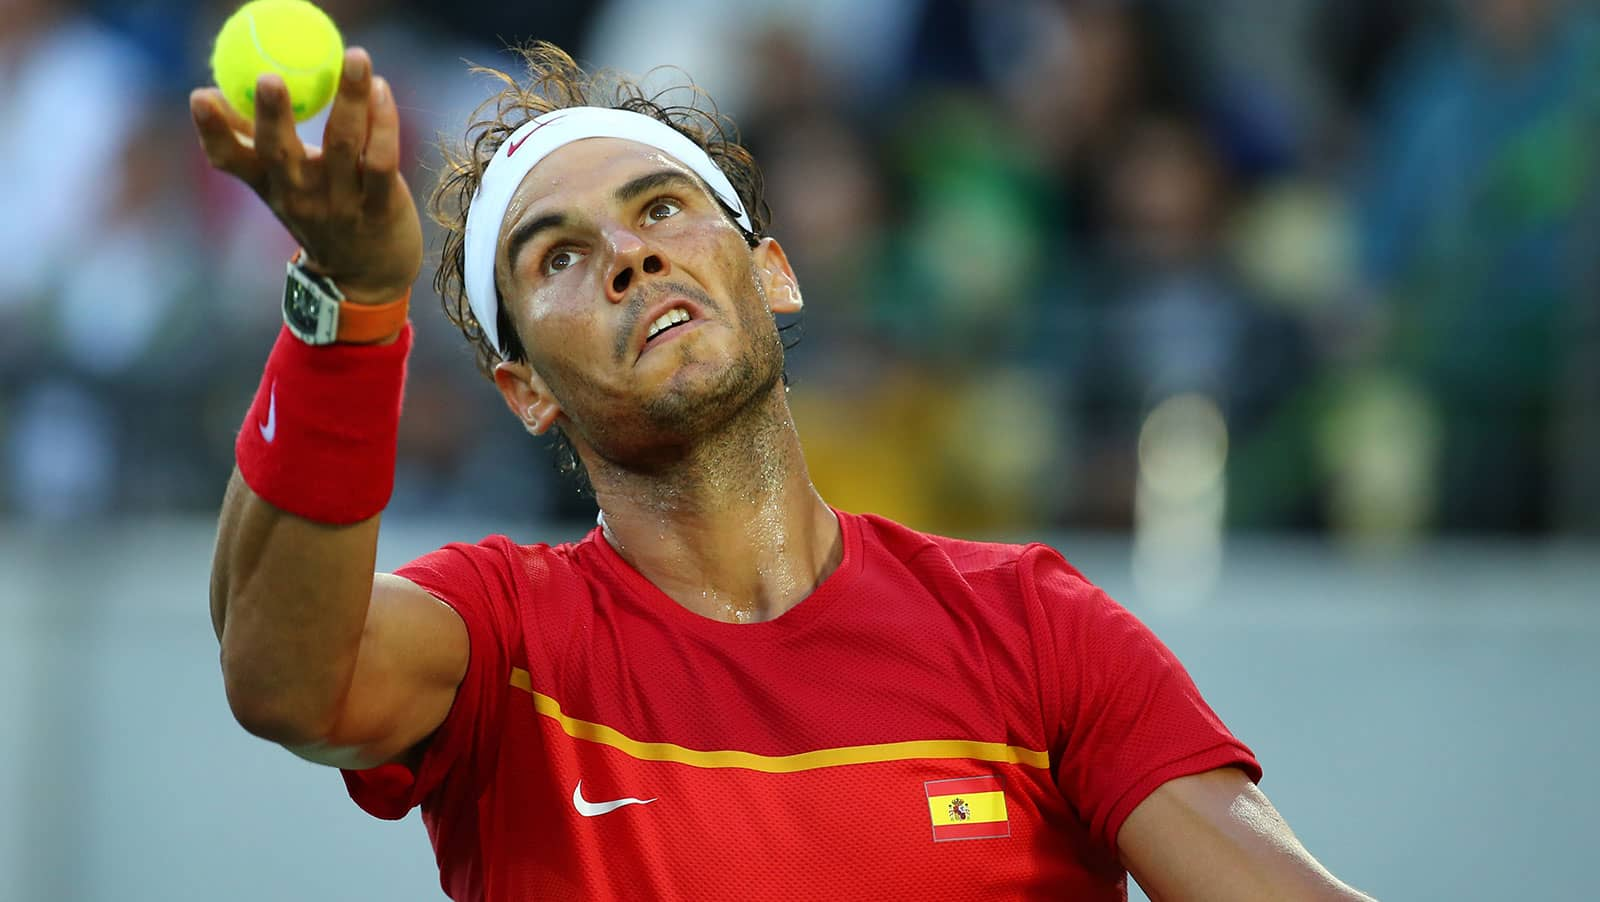 davis-cup-final-sees-spain-reign-in-madrid-as-nadal-claims-victory-min